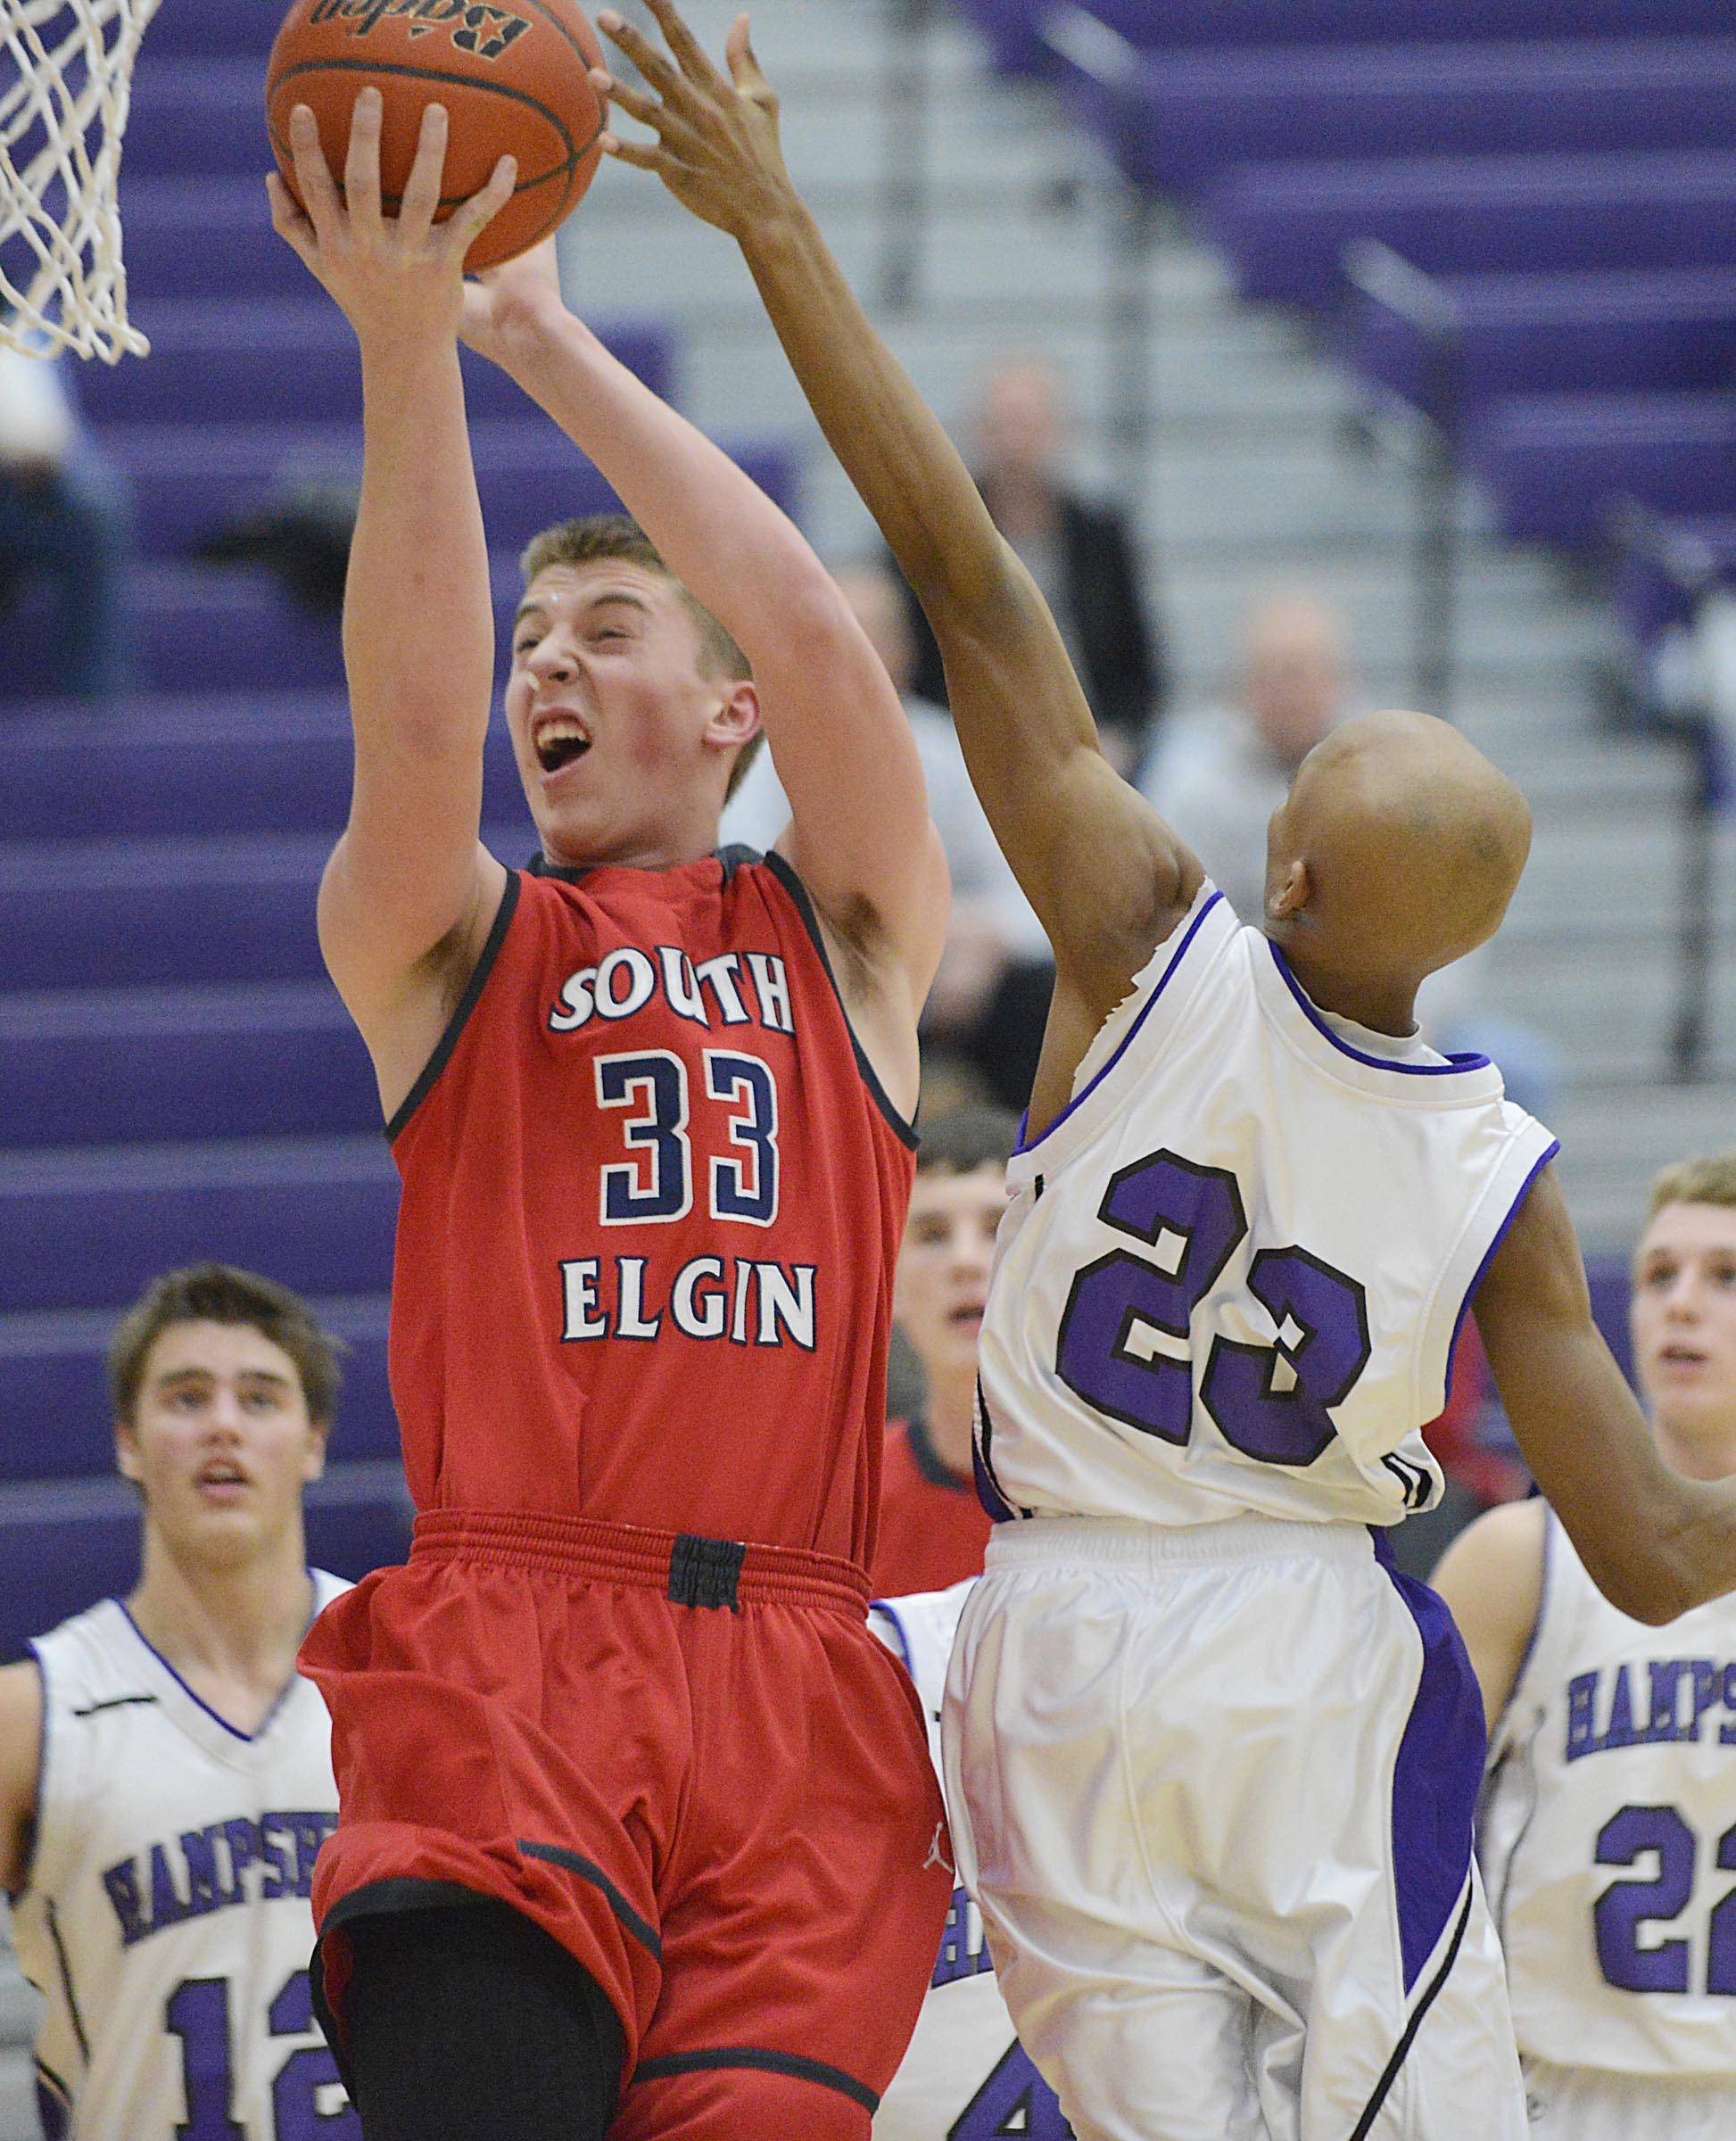 South Elgin's Jake Amrhein is fouled by Hampshire's Nico Bennett Wednesday in Hampshire.